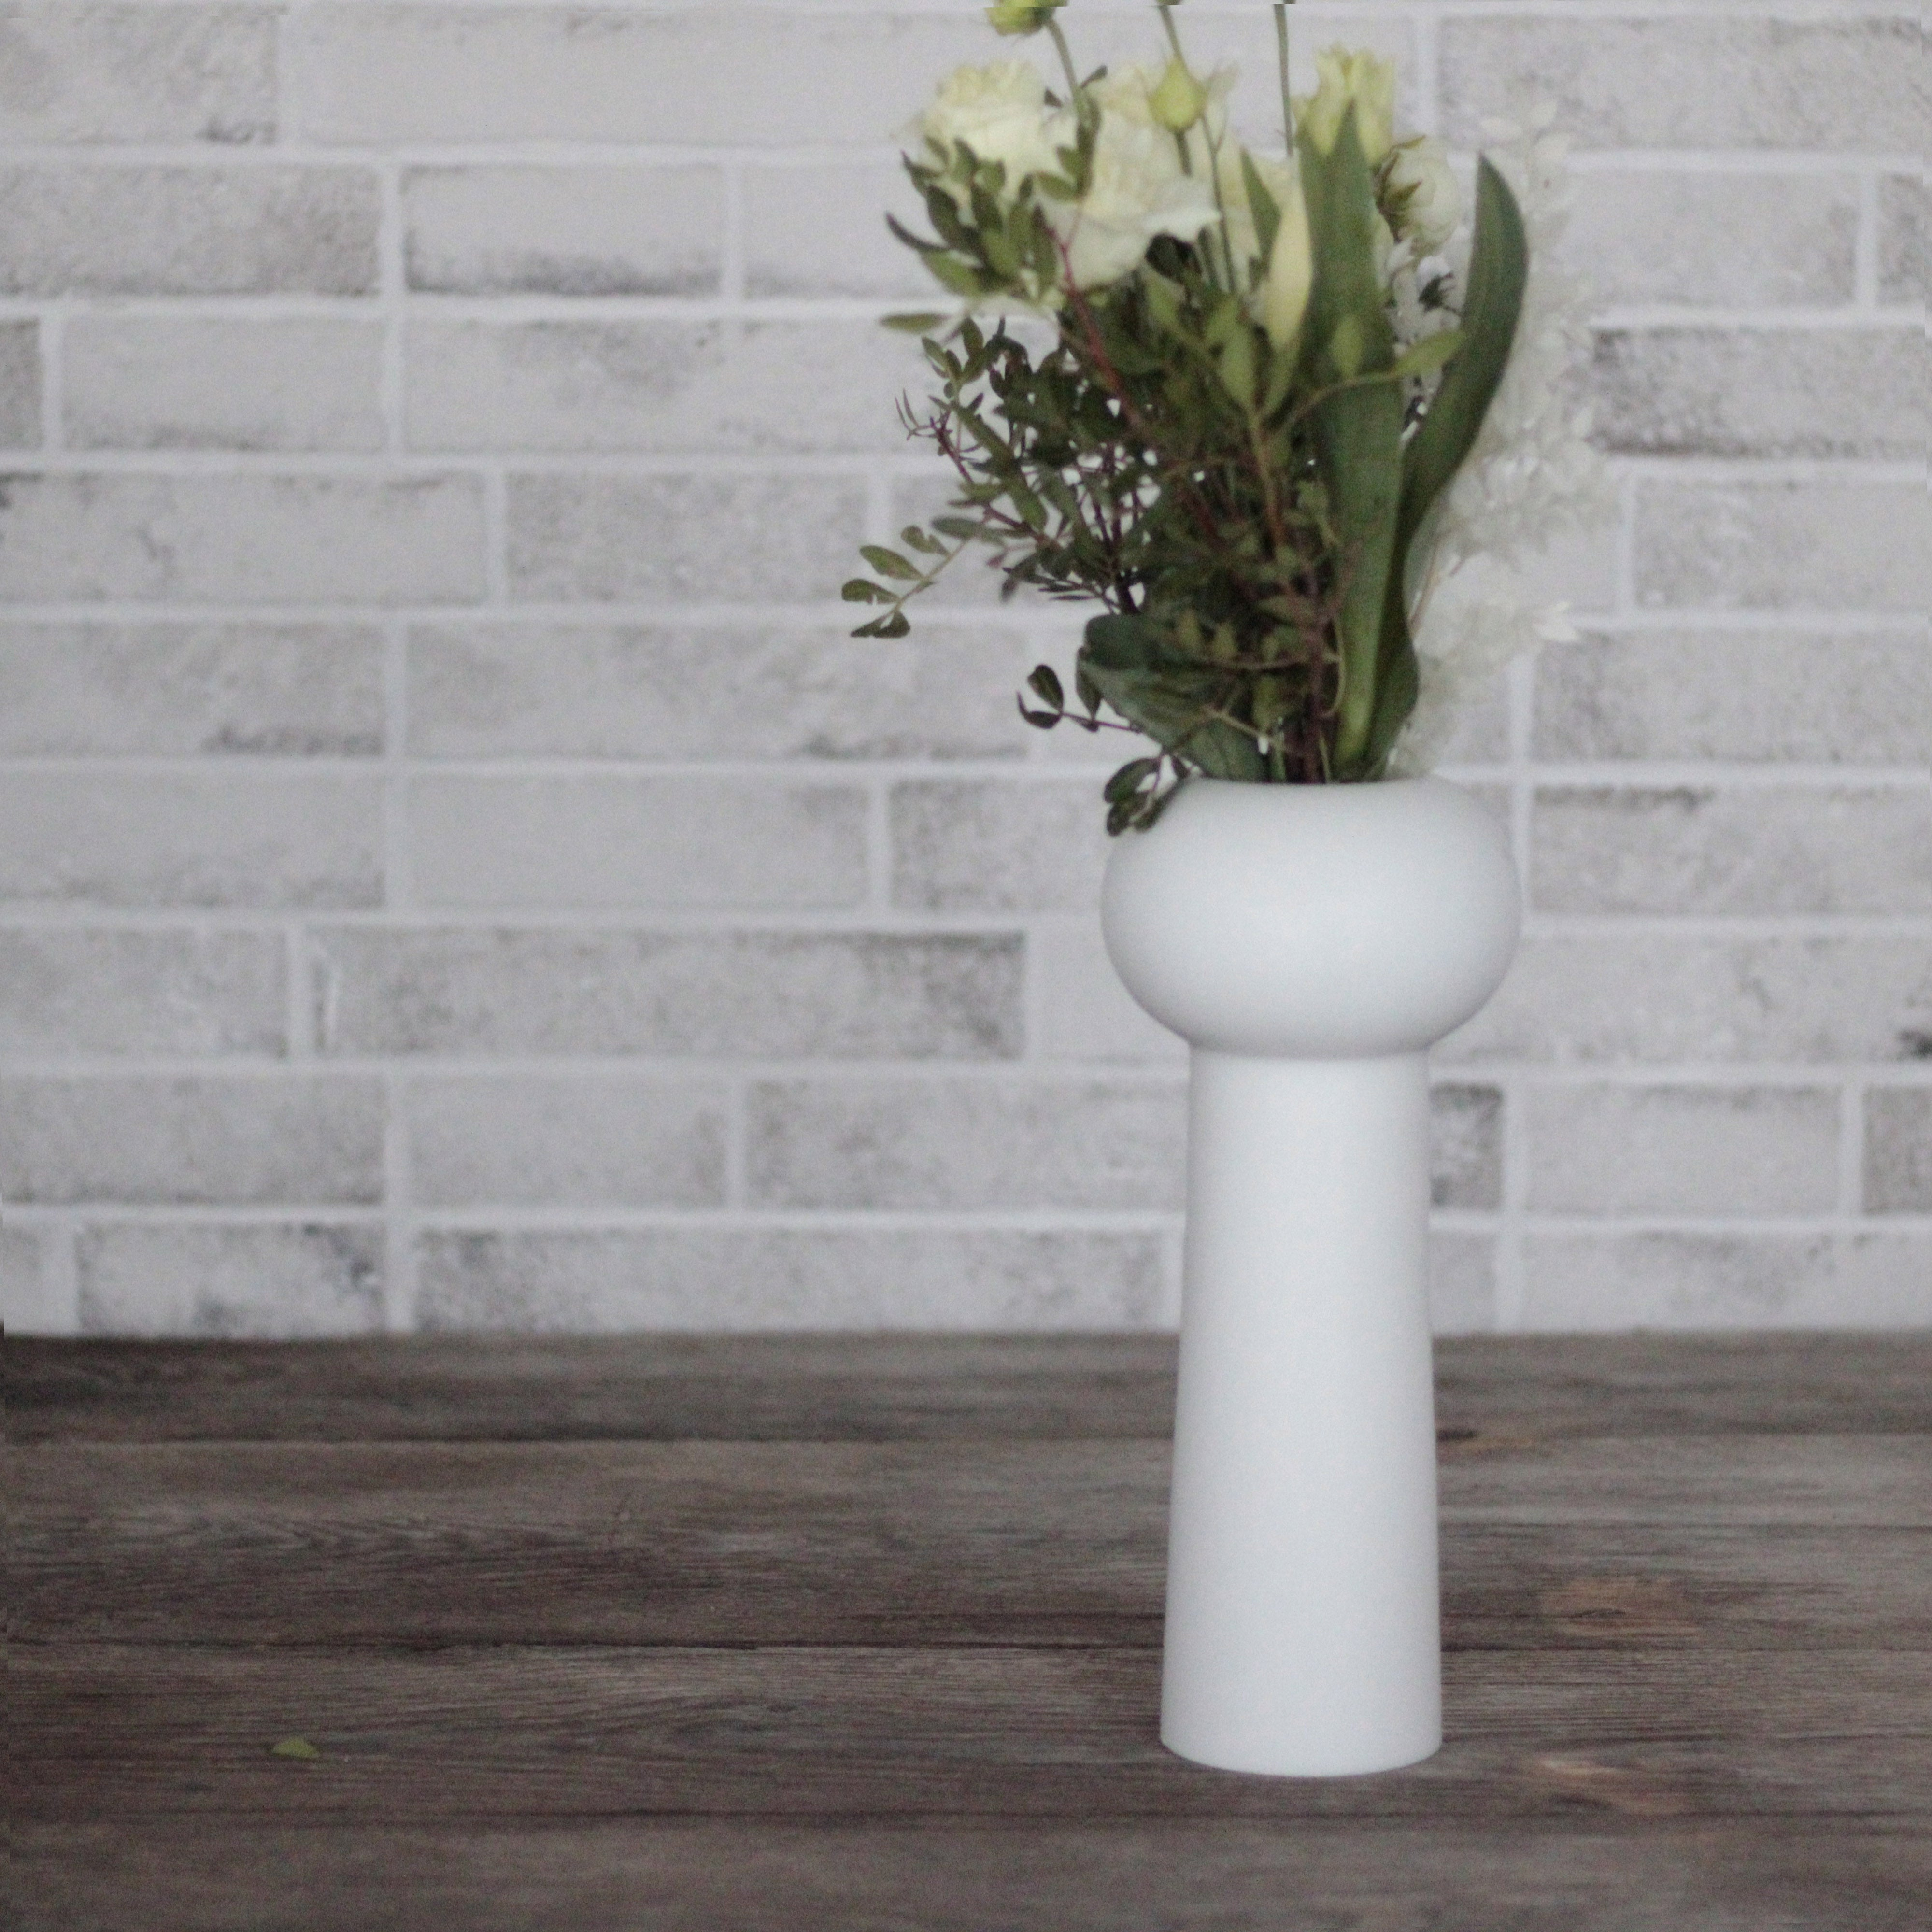 "Vaso Cilindro Minimal"" in Marmo Bianco di Carrara by Carrara by Carrara_Home_Design®"